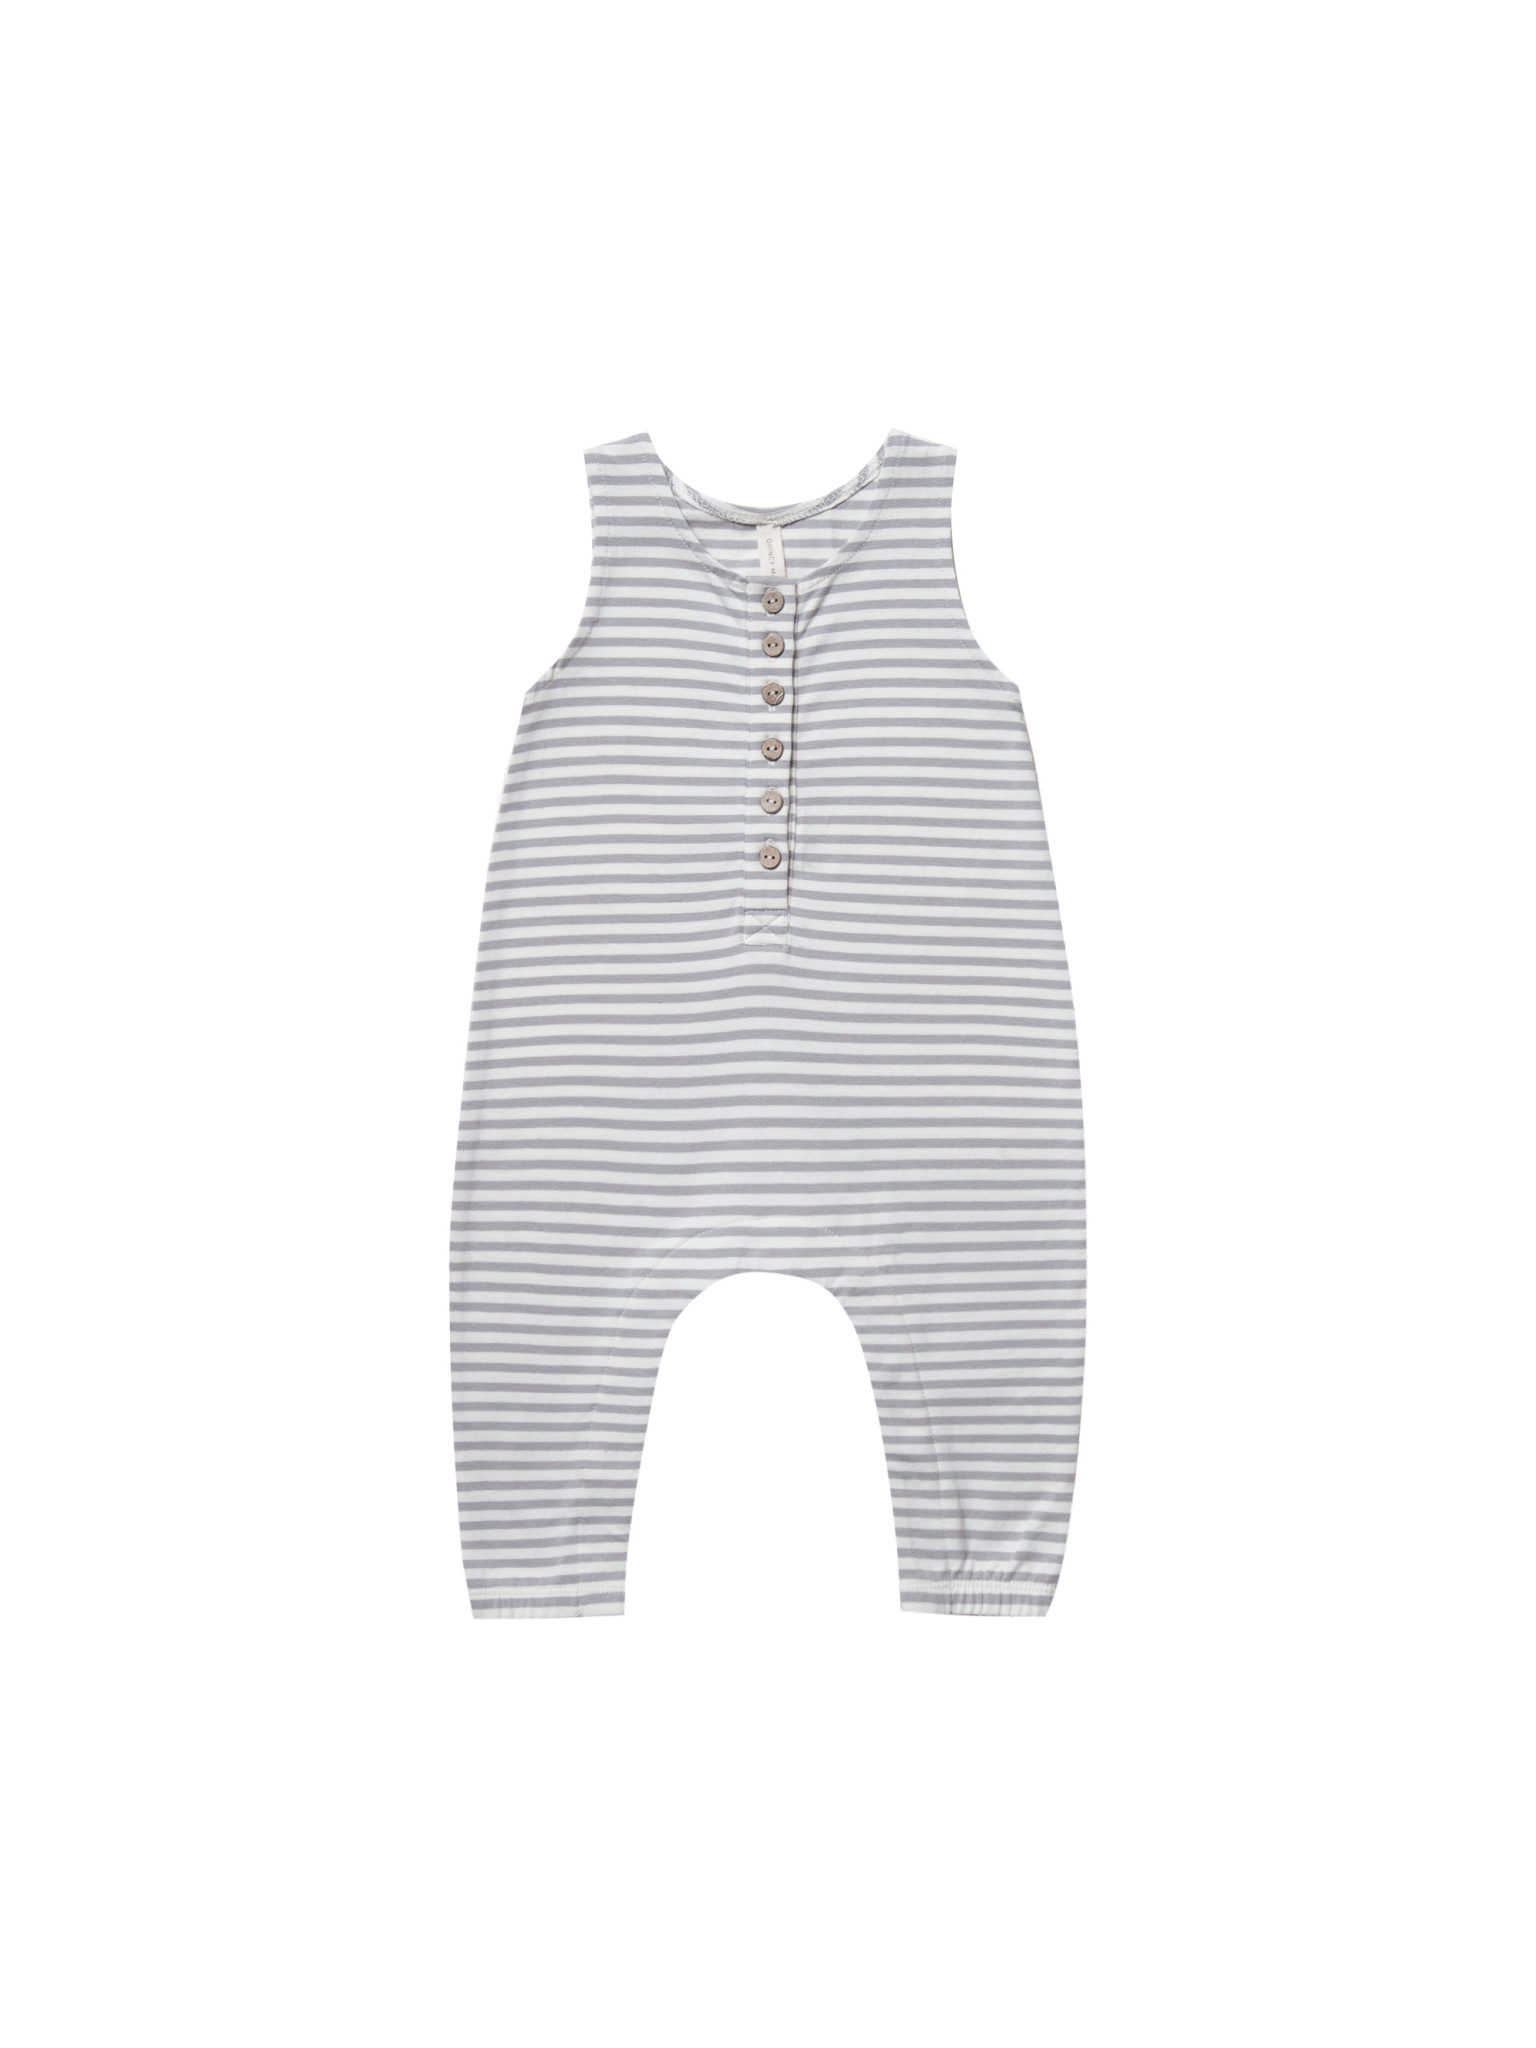 QUINCY MAE Organic Sleeveless Jumpsuit